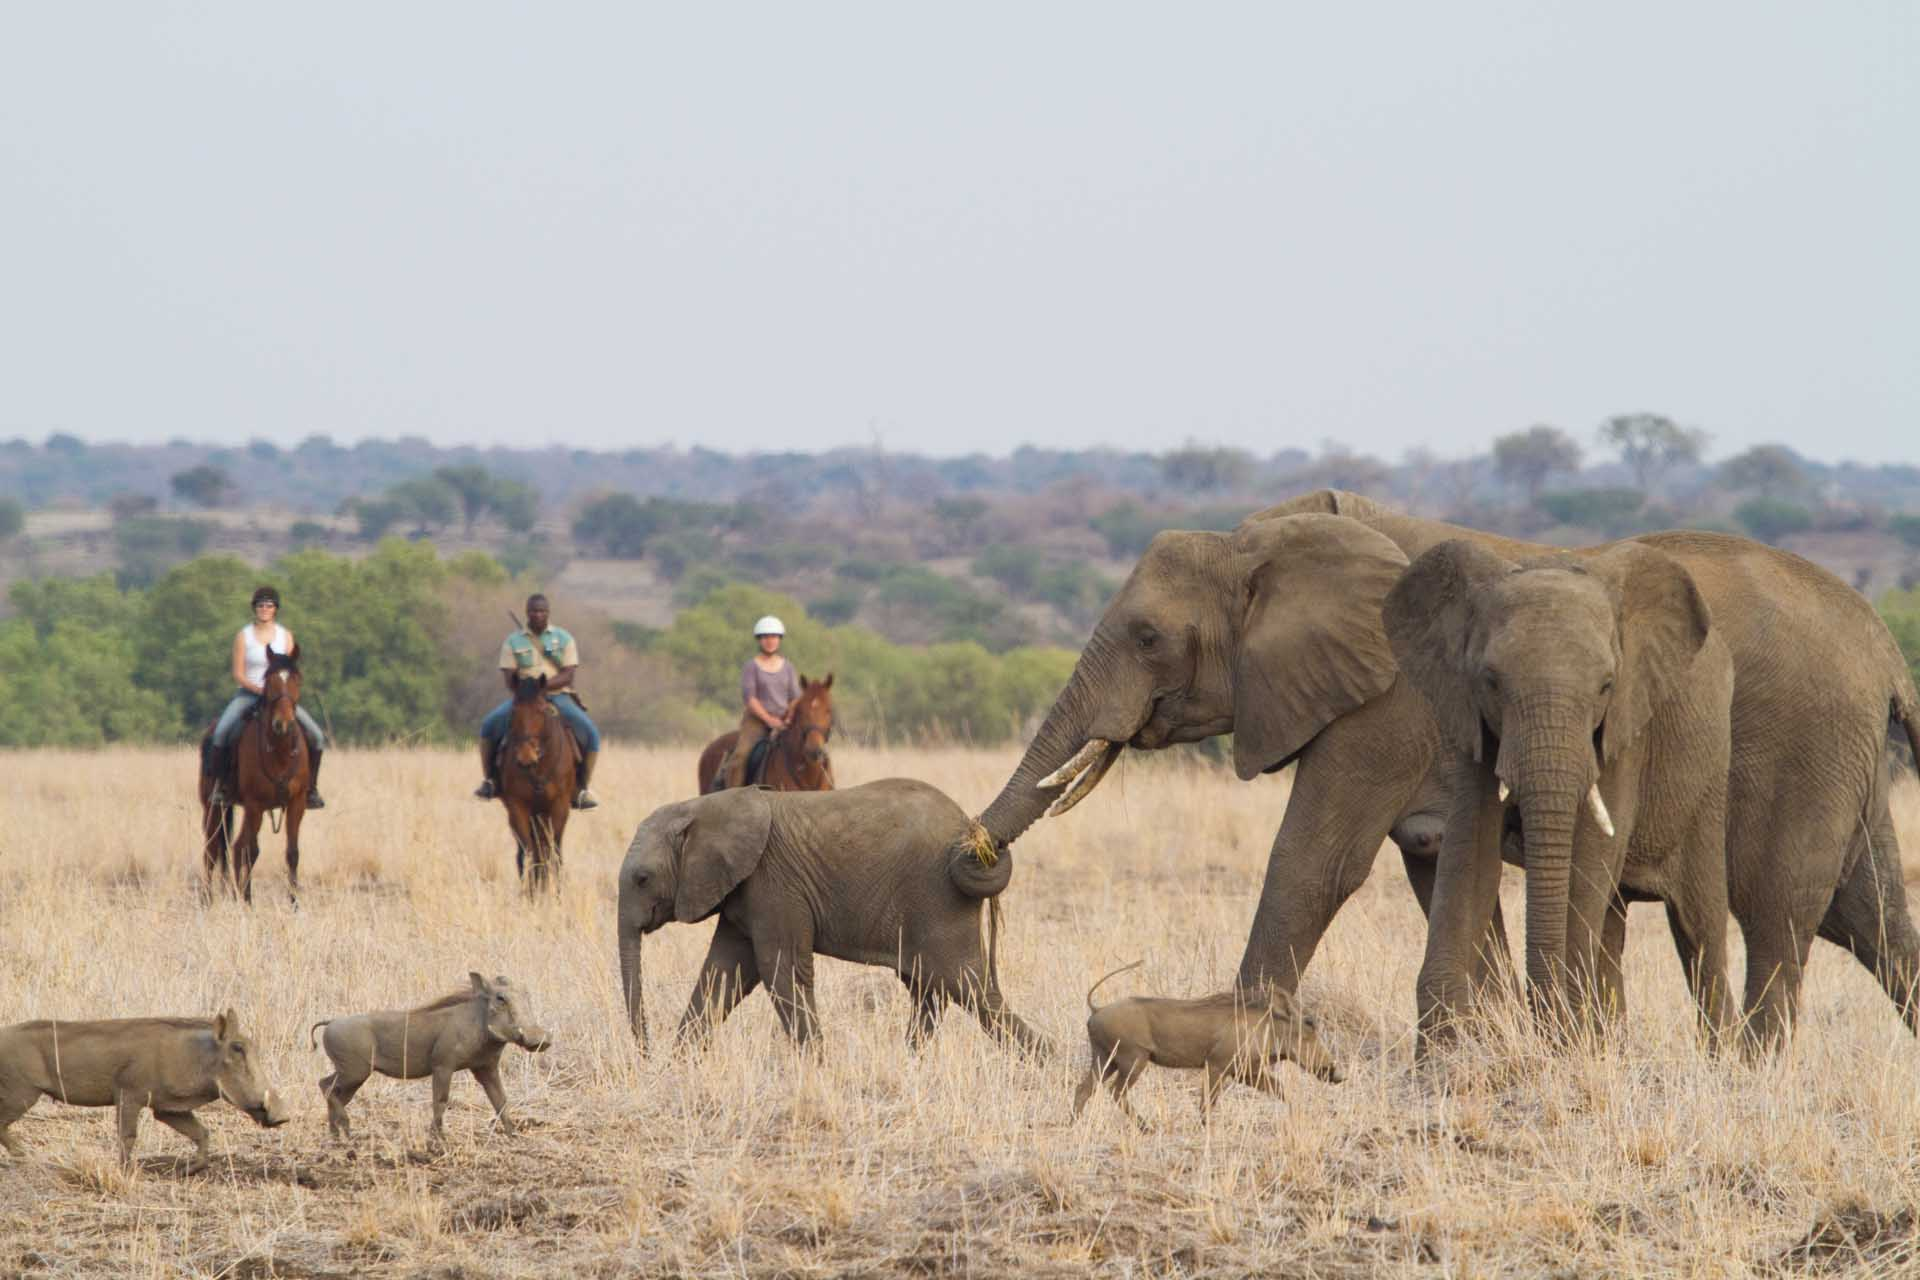 Ride through the vast Mashatu Game Reserve tucked against Botswana's border with South Africa